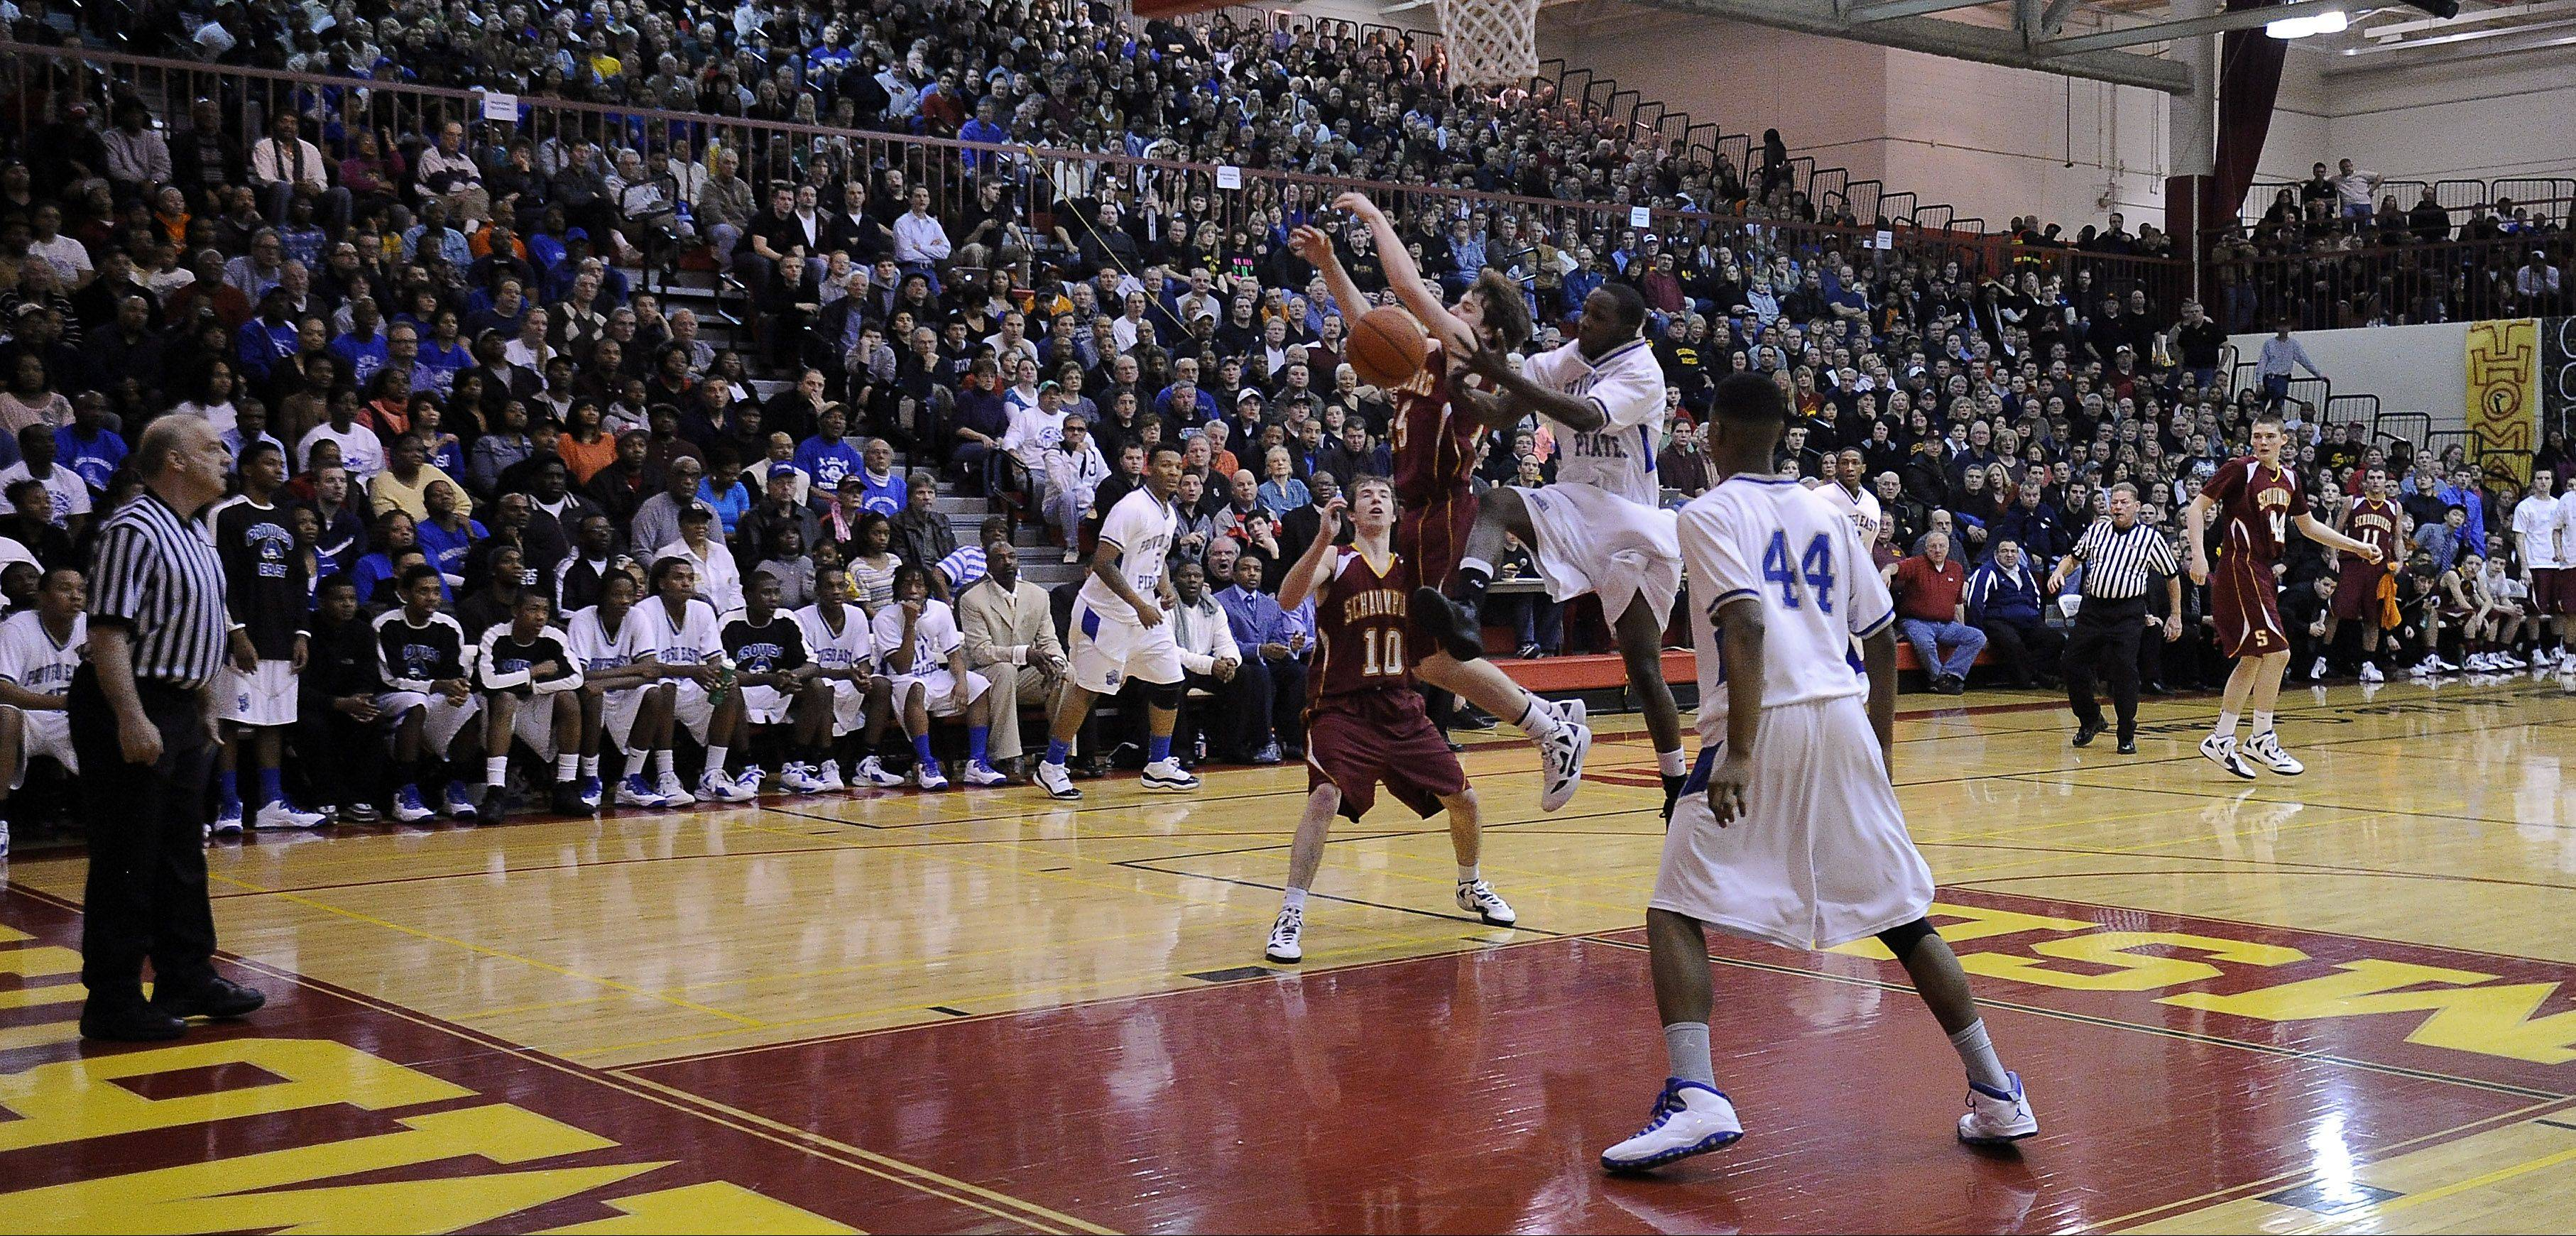 It's a battle in the paint as Schaumburg and Proviso East fight for a rebound before a packed house at Schaumburg on Friday.